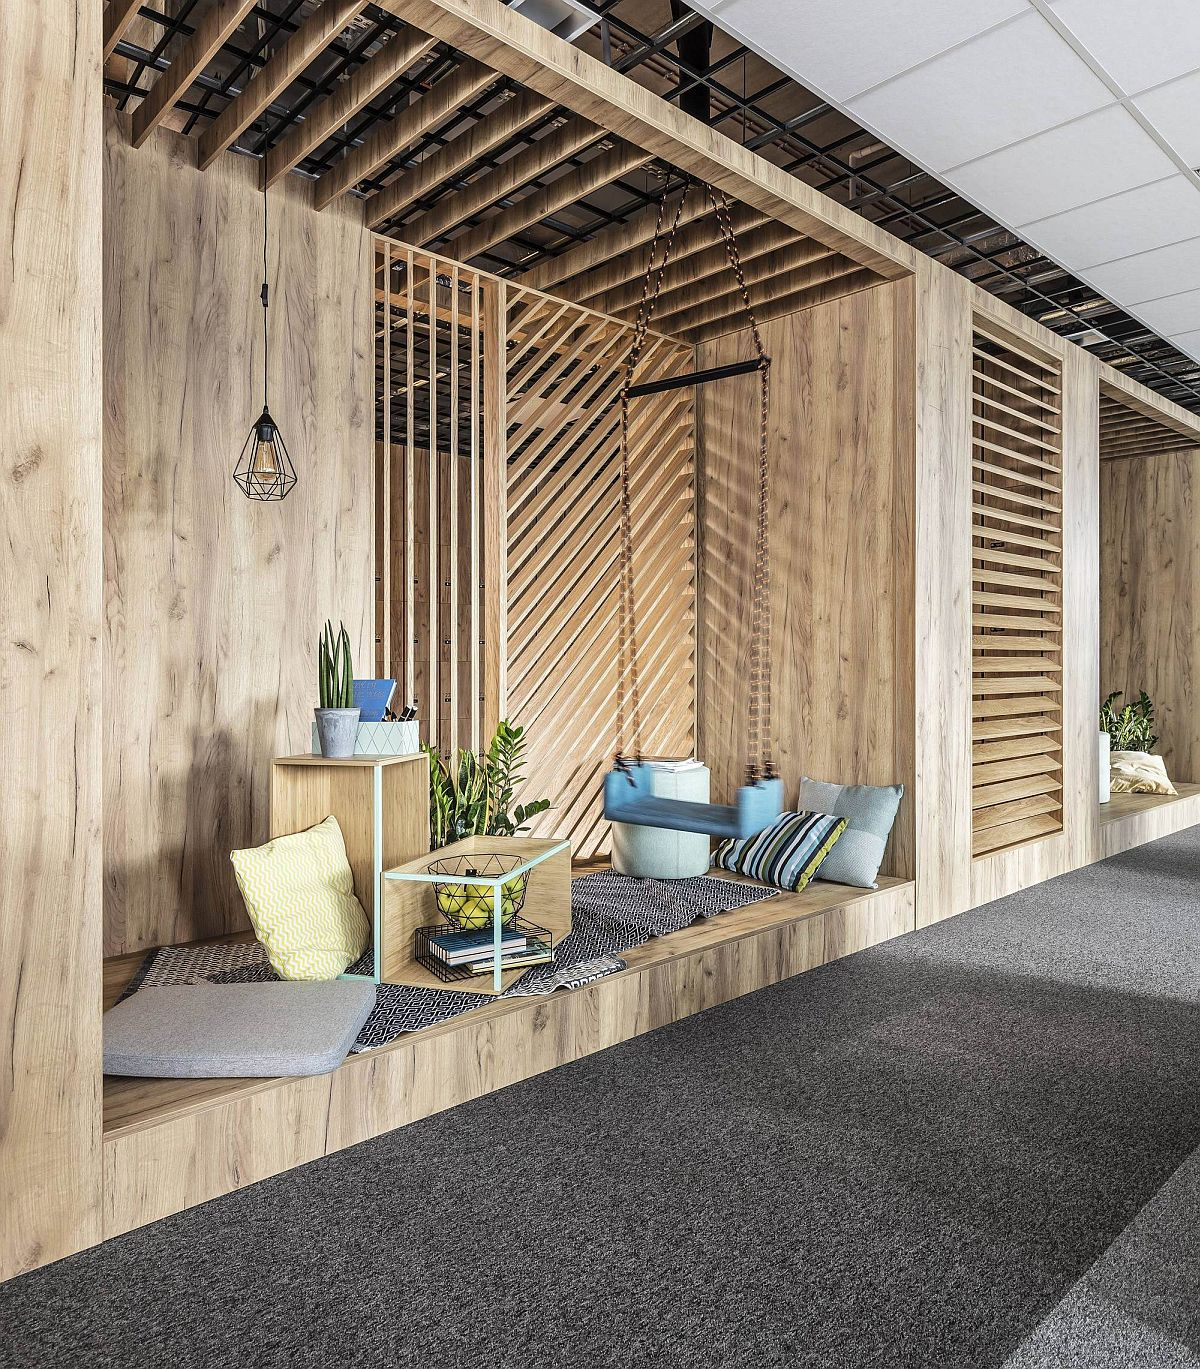 Comfy custom relaxation zone in wood for office space